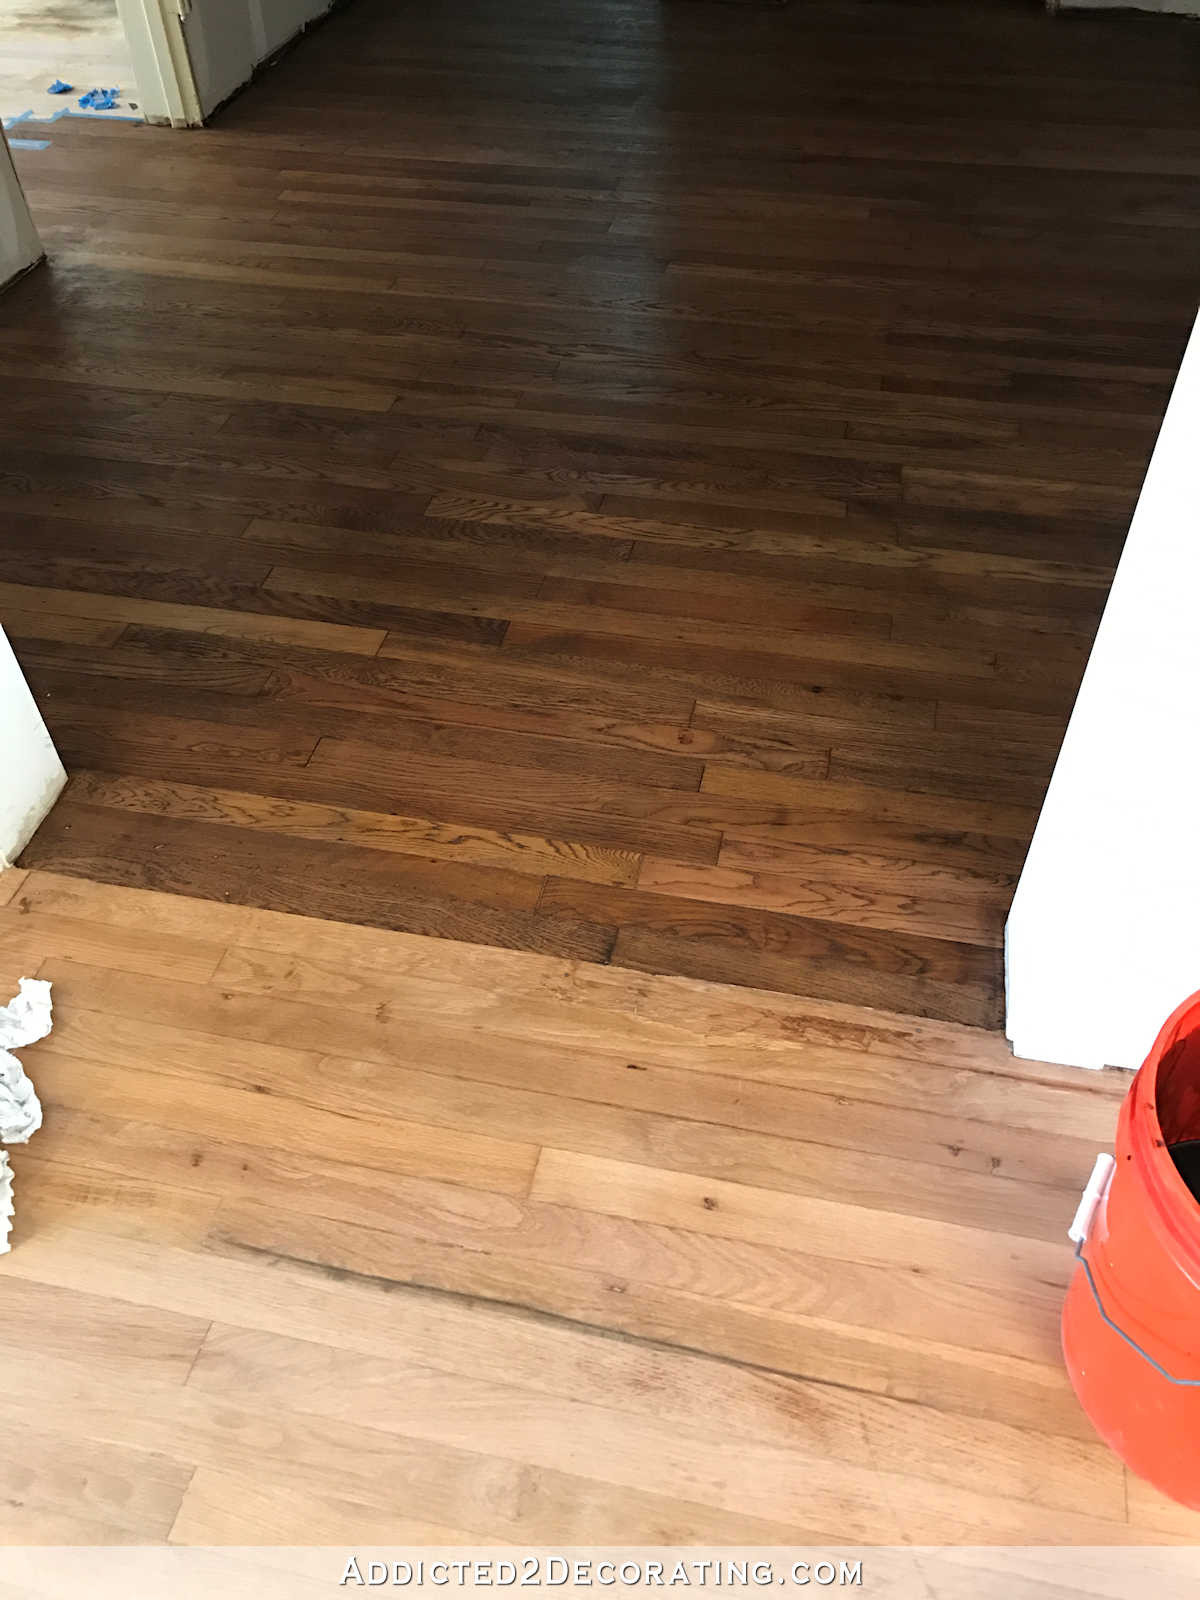 red oak hardwood flooring matte finish of adventures in staining my red oak hardwood floors products process in staining red oak hardwood floors 2 tape off one section at a time for